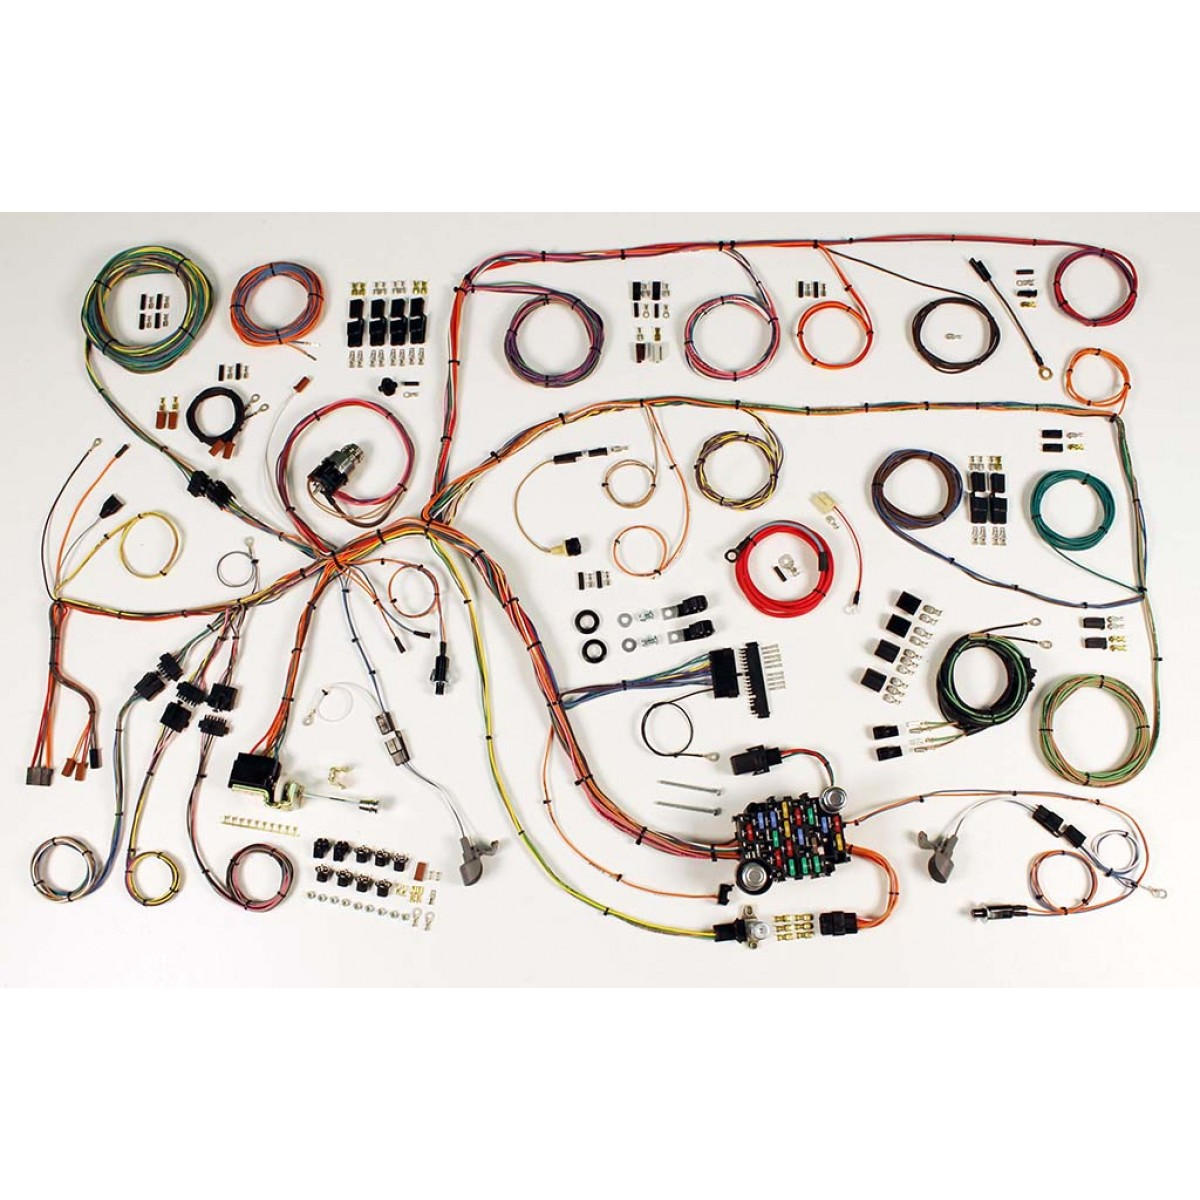 510379 complete wiring harness kit 1960 1964 ford falcon 1960 1965 mercury comet part 510379 1960 1964 ford falcon complete wiring harness kit 1960 1964 ford ford truck wiring harness kits at eliteediting.co